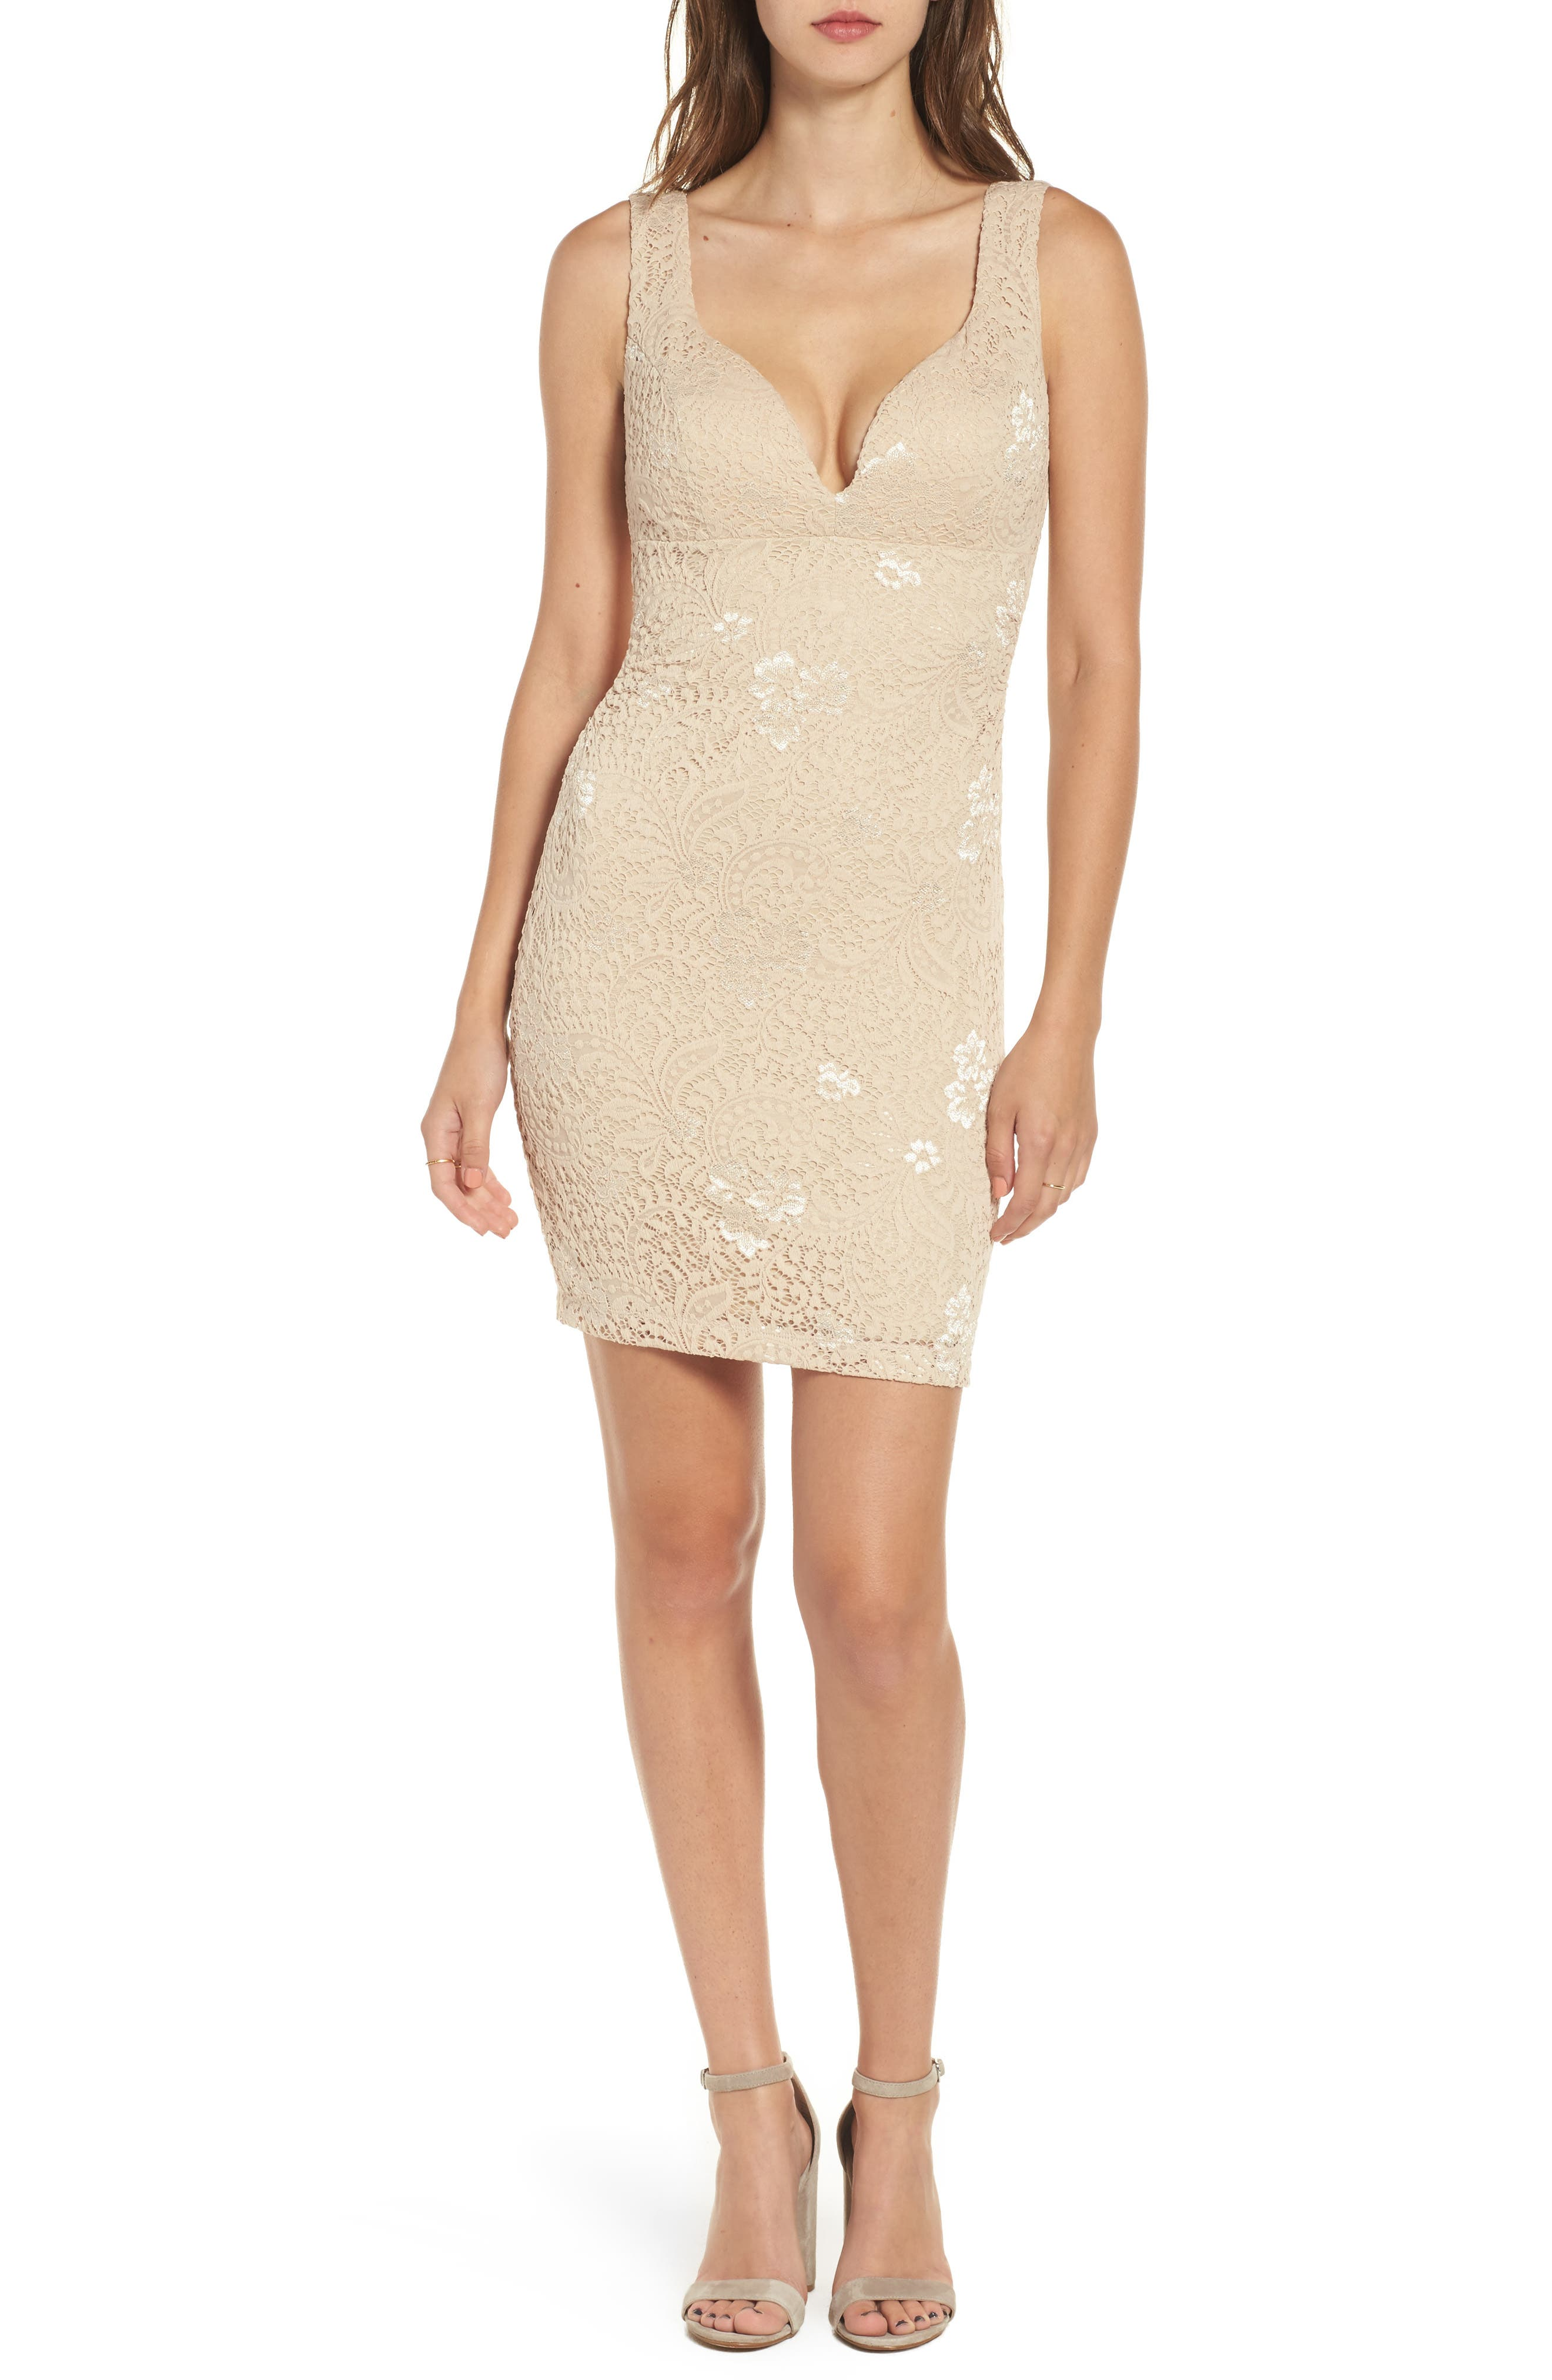 Main Image - Love Nickie Lew Lace Body Con Dress